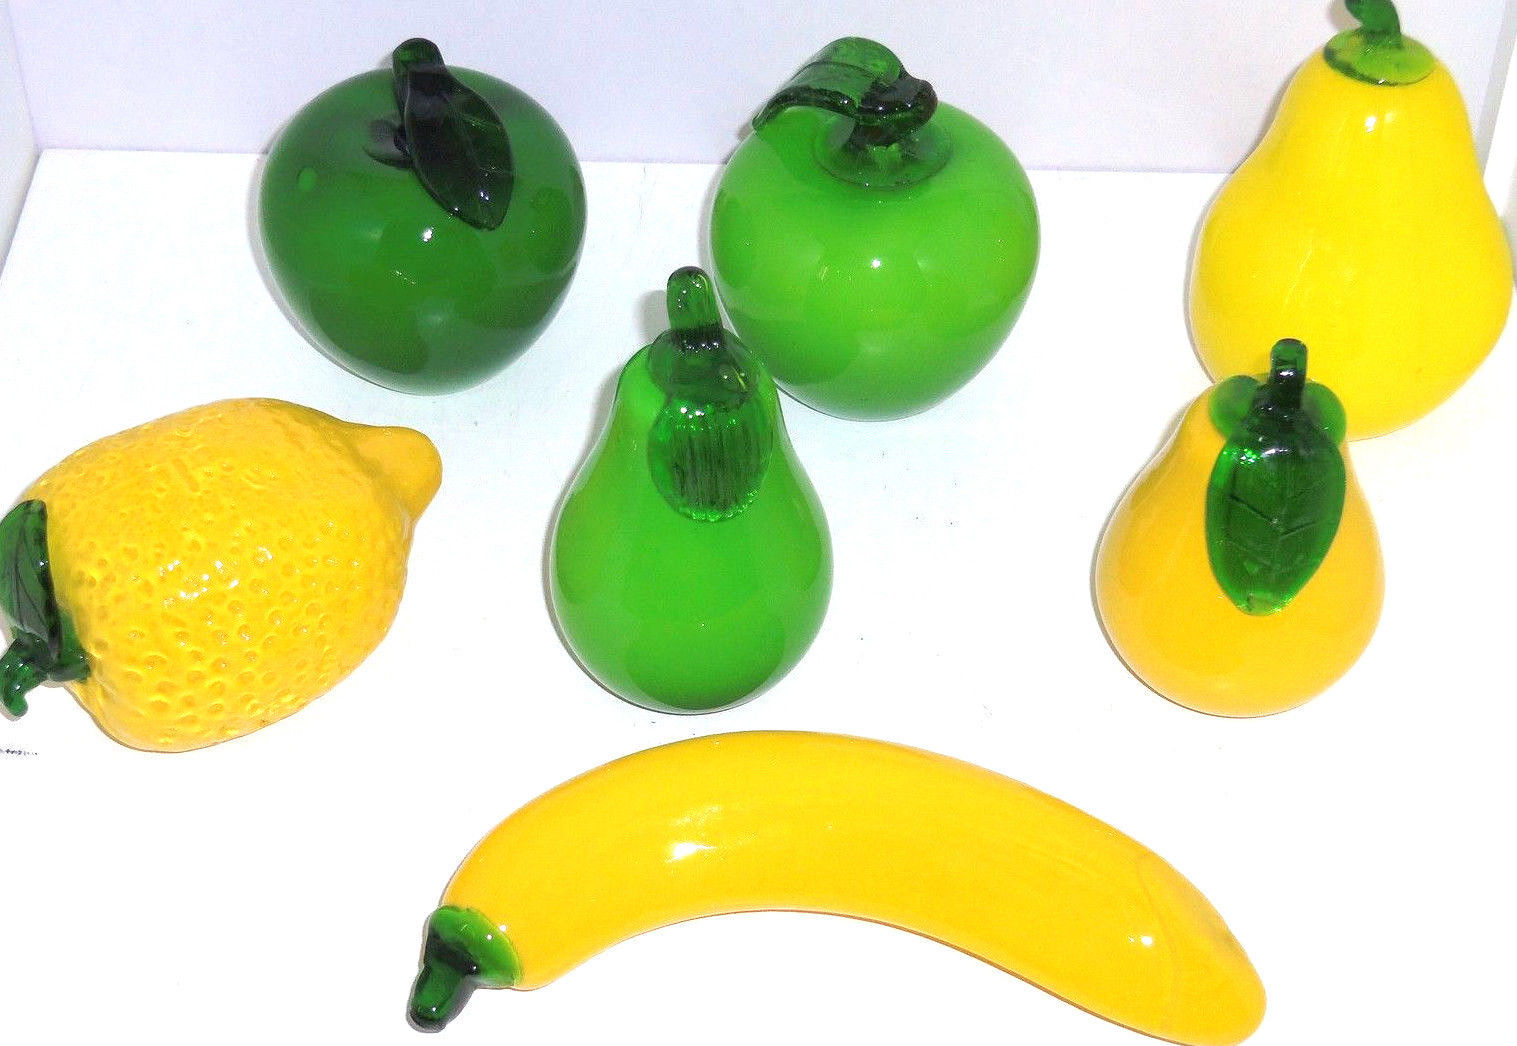 Glass Art Fruit Pears Apples Lemon Banana Green Yellow  Lot of 7